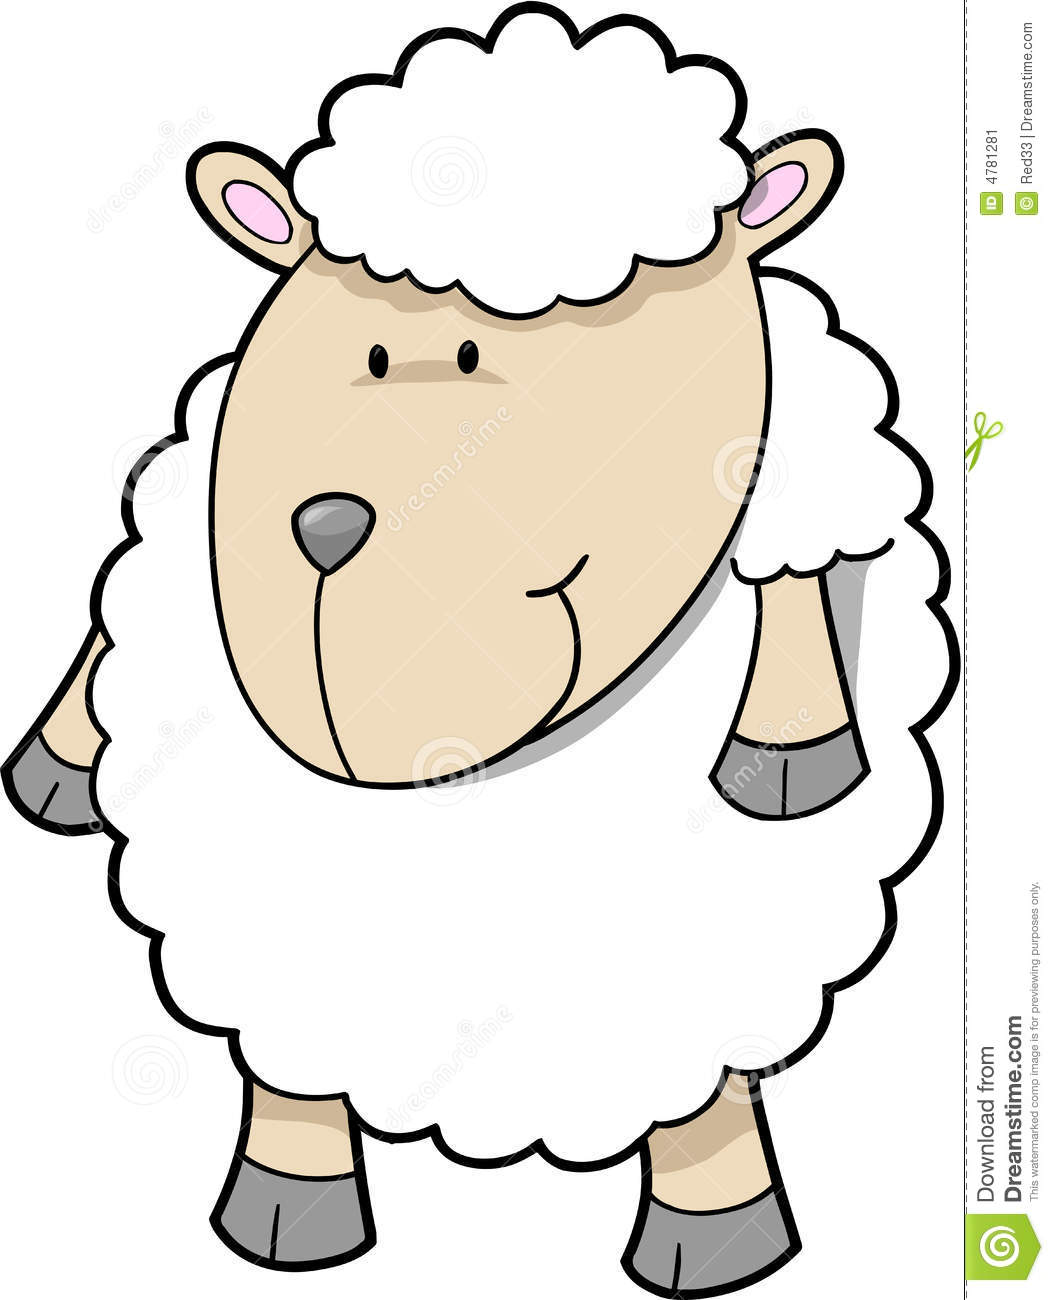 Baby Lamb Drawing Cute Sheep Vector Stock Vector Illustration Of Zoology